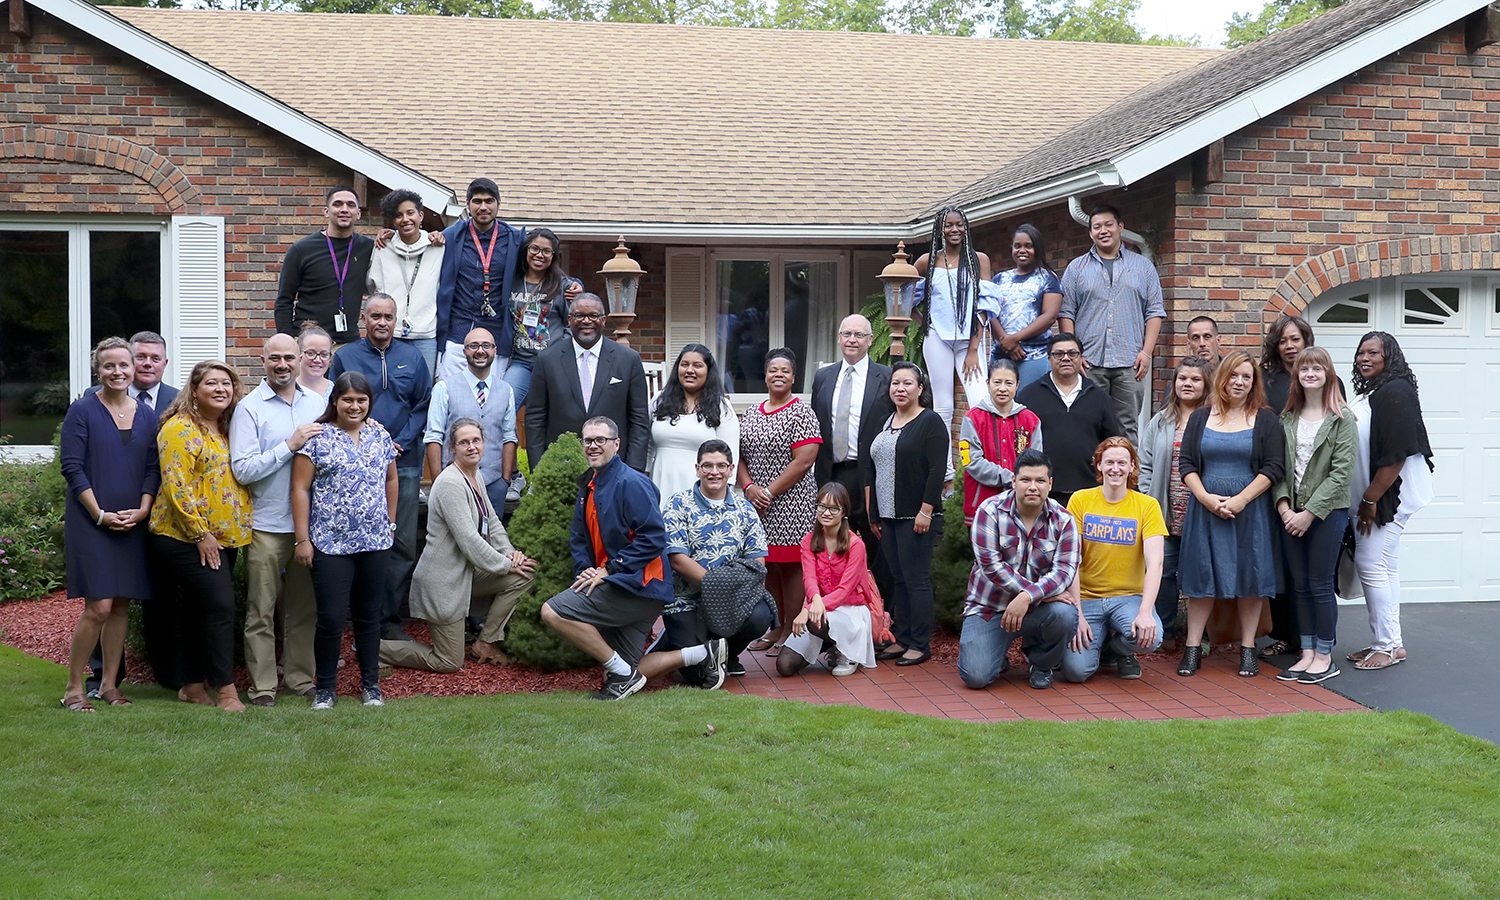 Members of the HWS Posse 5 cohort gather for a group photo outside the home of Vice President for Student Affairs Robb Flowers and Director of the Center for Community Engagement and Service Learning Katie Flowers